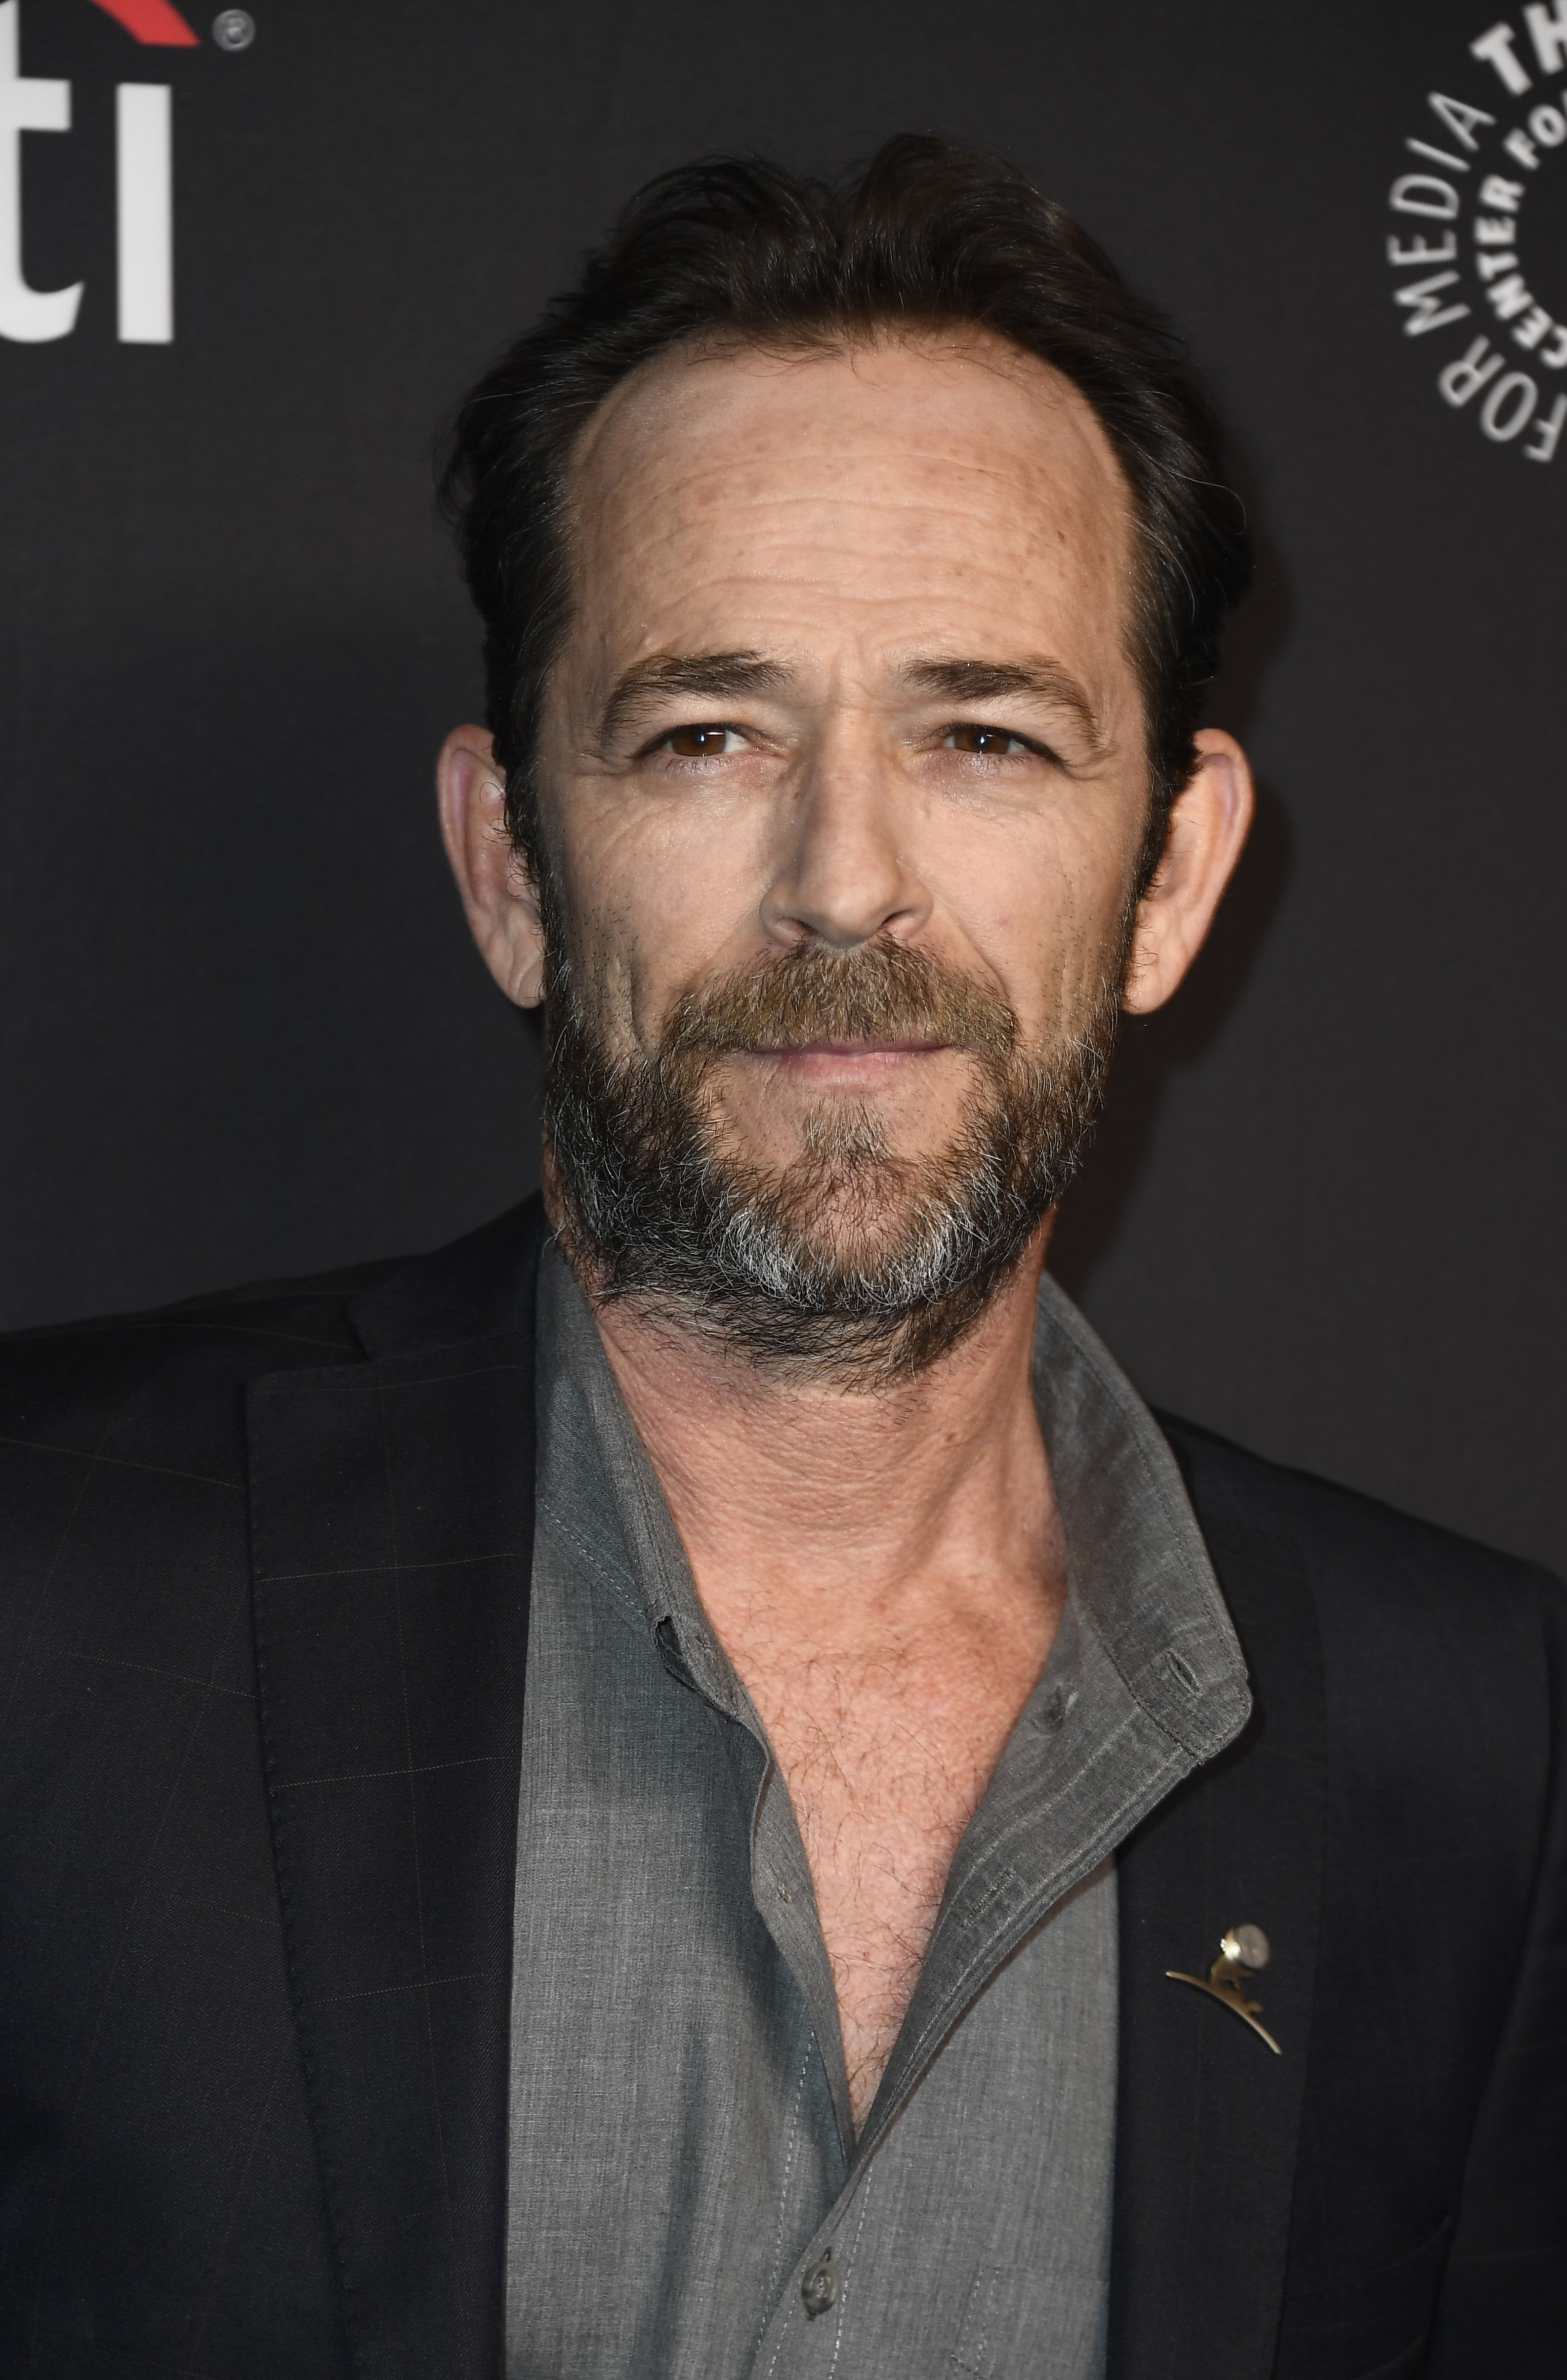 Luke Perry arrives for the 2018 PaleyFest in Los Angeles | Photo: Getty Images